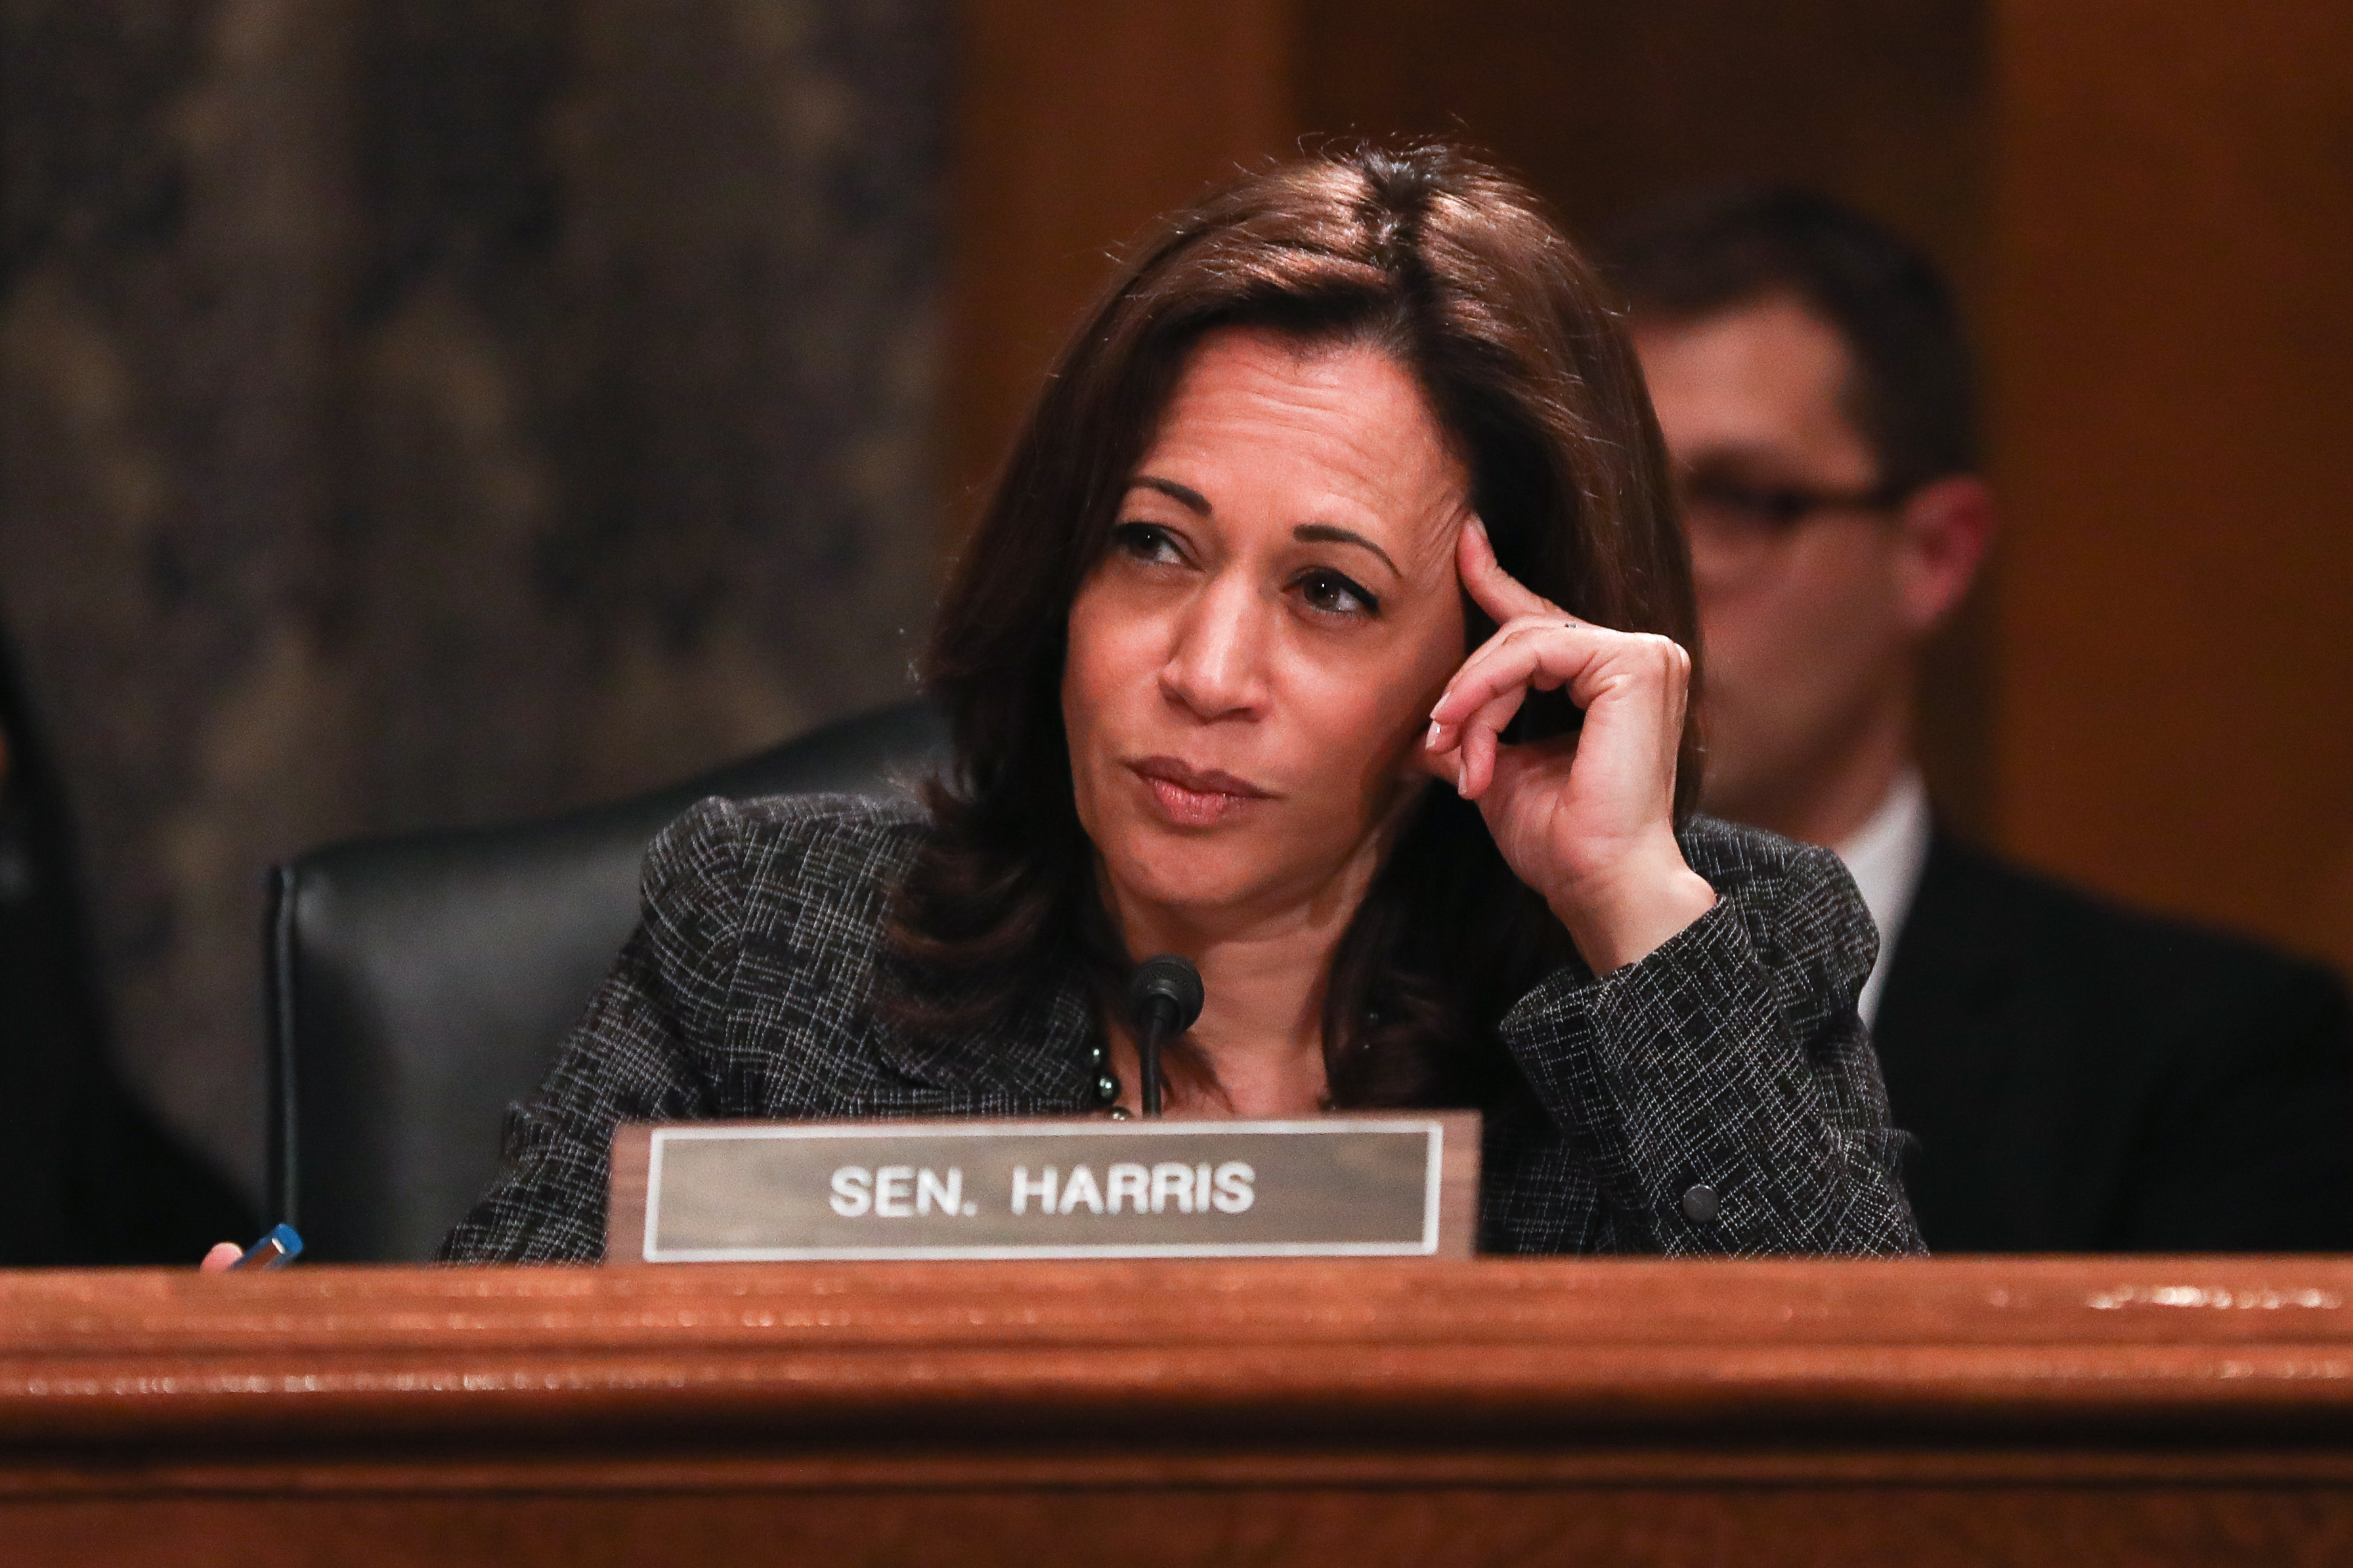 'I Don't Know': Kamala Harris Stumped When Asked What Laws Trump Lawyer Broke